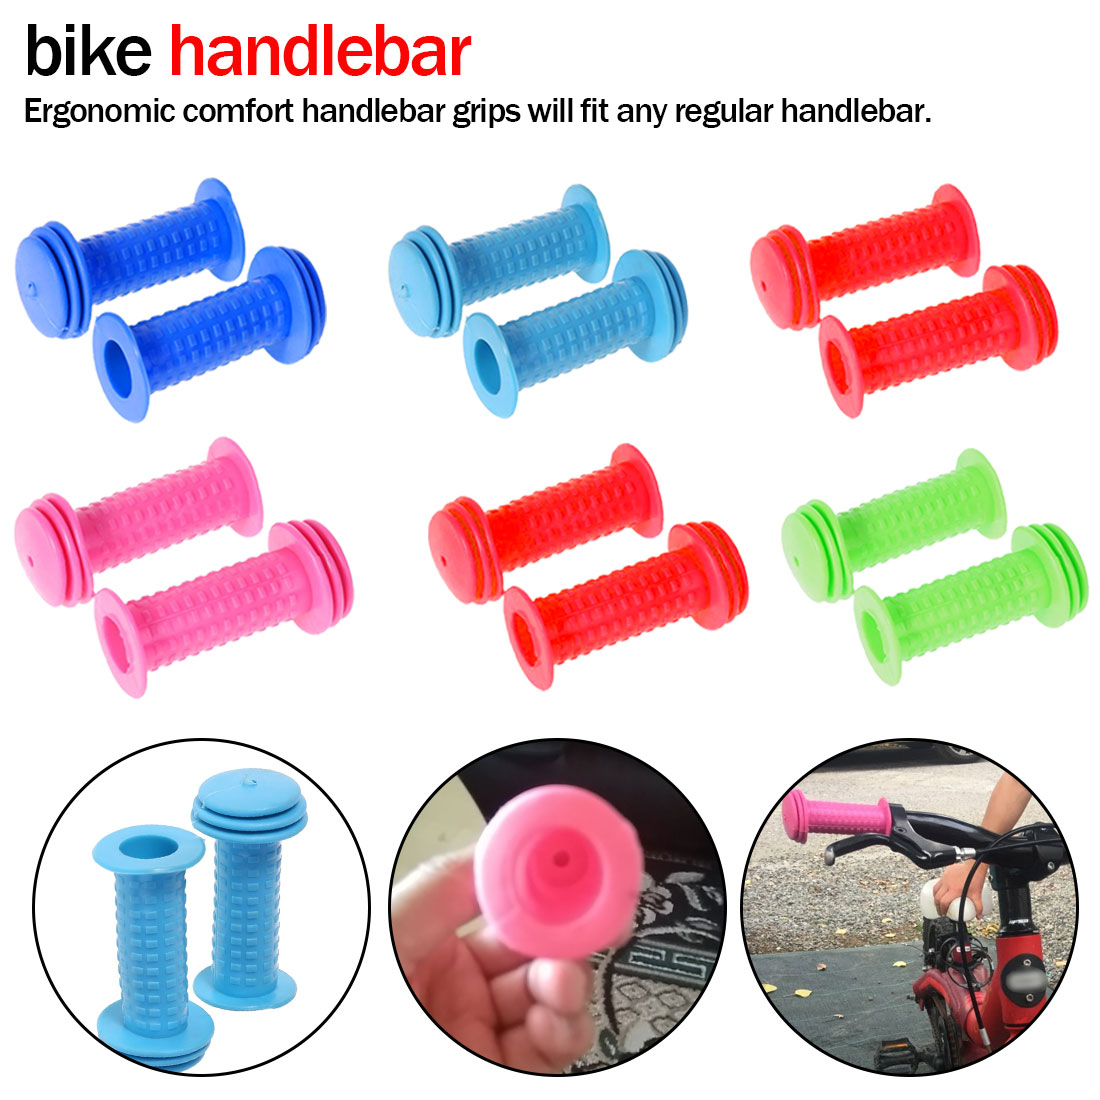 Bicycle Handlebar Grips Fixie Fixed Gear Bike Rubber 8 Colors Bicycle Grip Cover